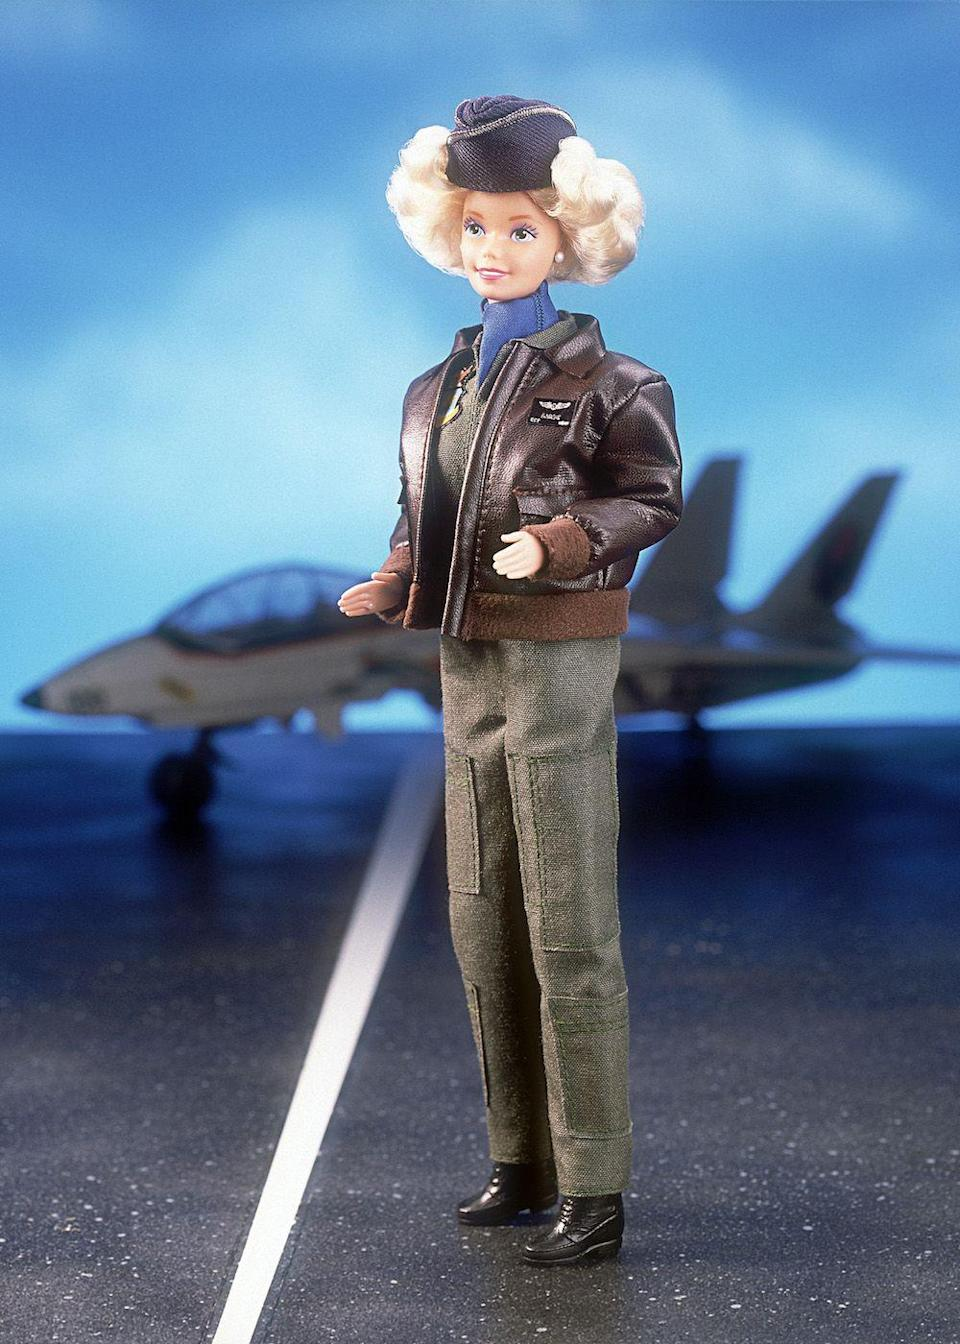 <p>The designer collaborations don't put a stop to Barbie's impressive resume building. This year, she's an Air Force pilot.</p>